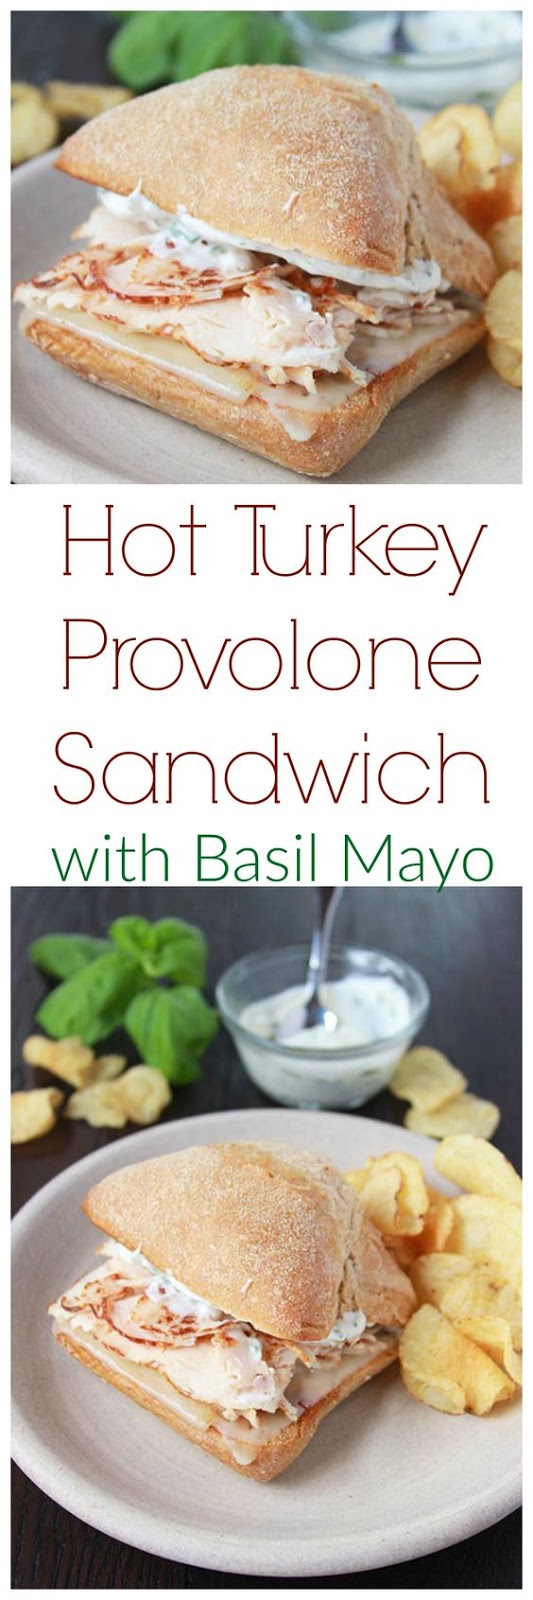 Hot Turkey Provolone Sandwich with Basil Mayo